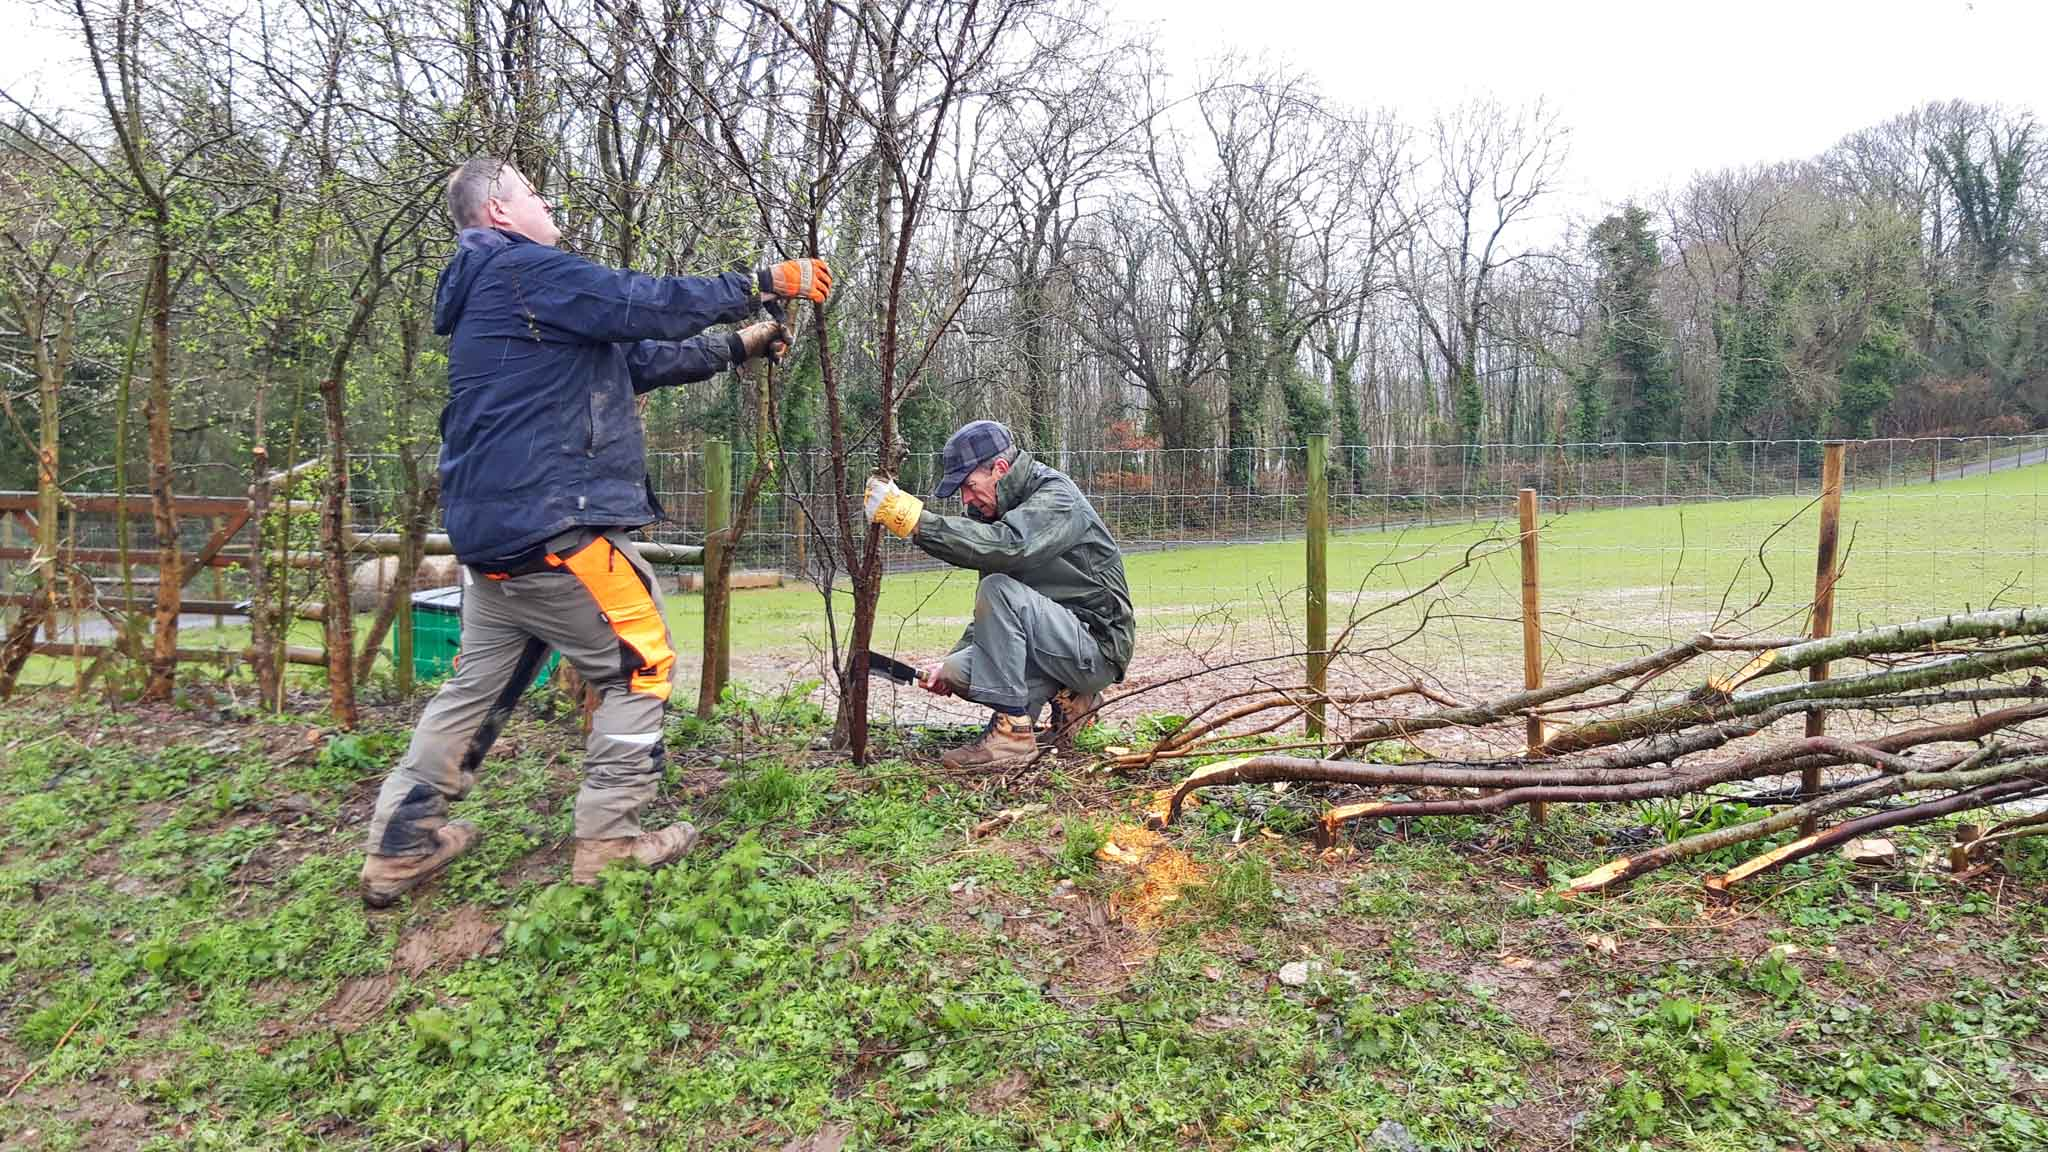 Mike Newby (left) laying hedges at Dartington. Credit: Vicky Churchhill